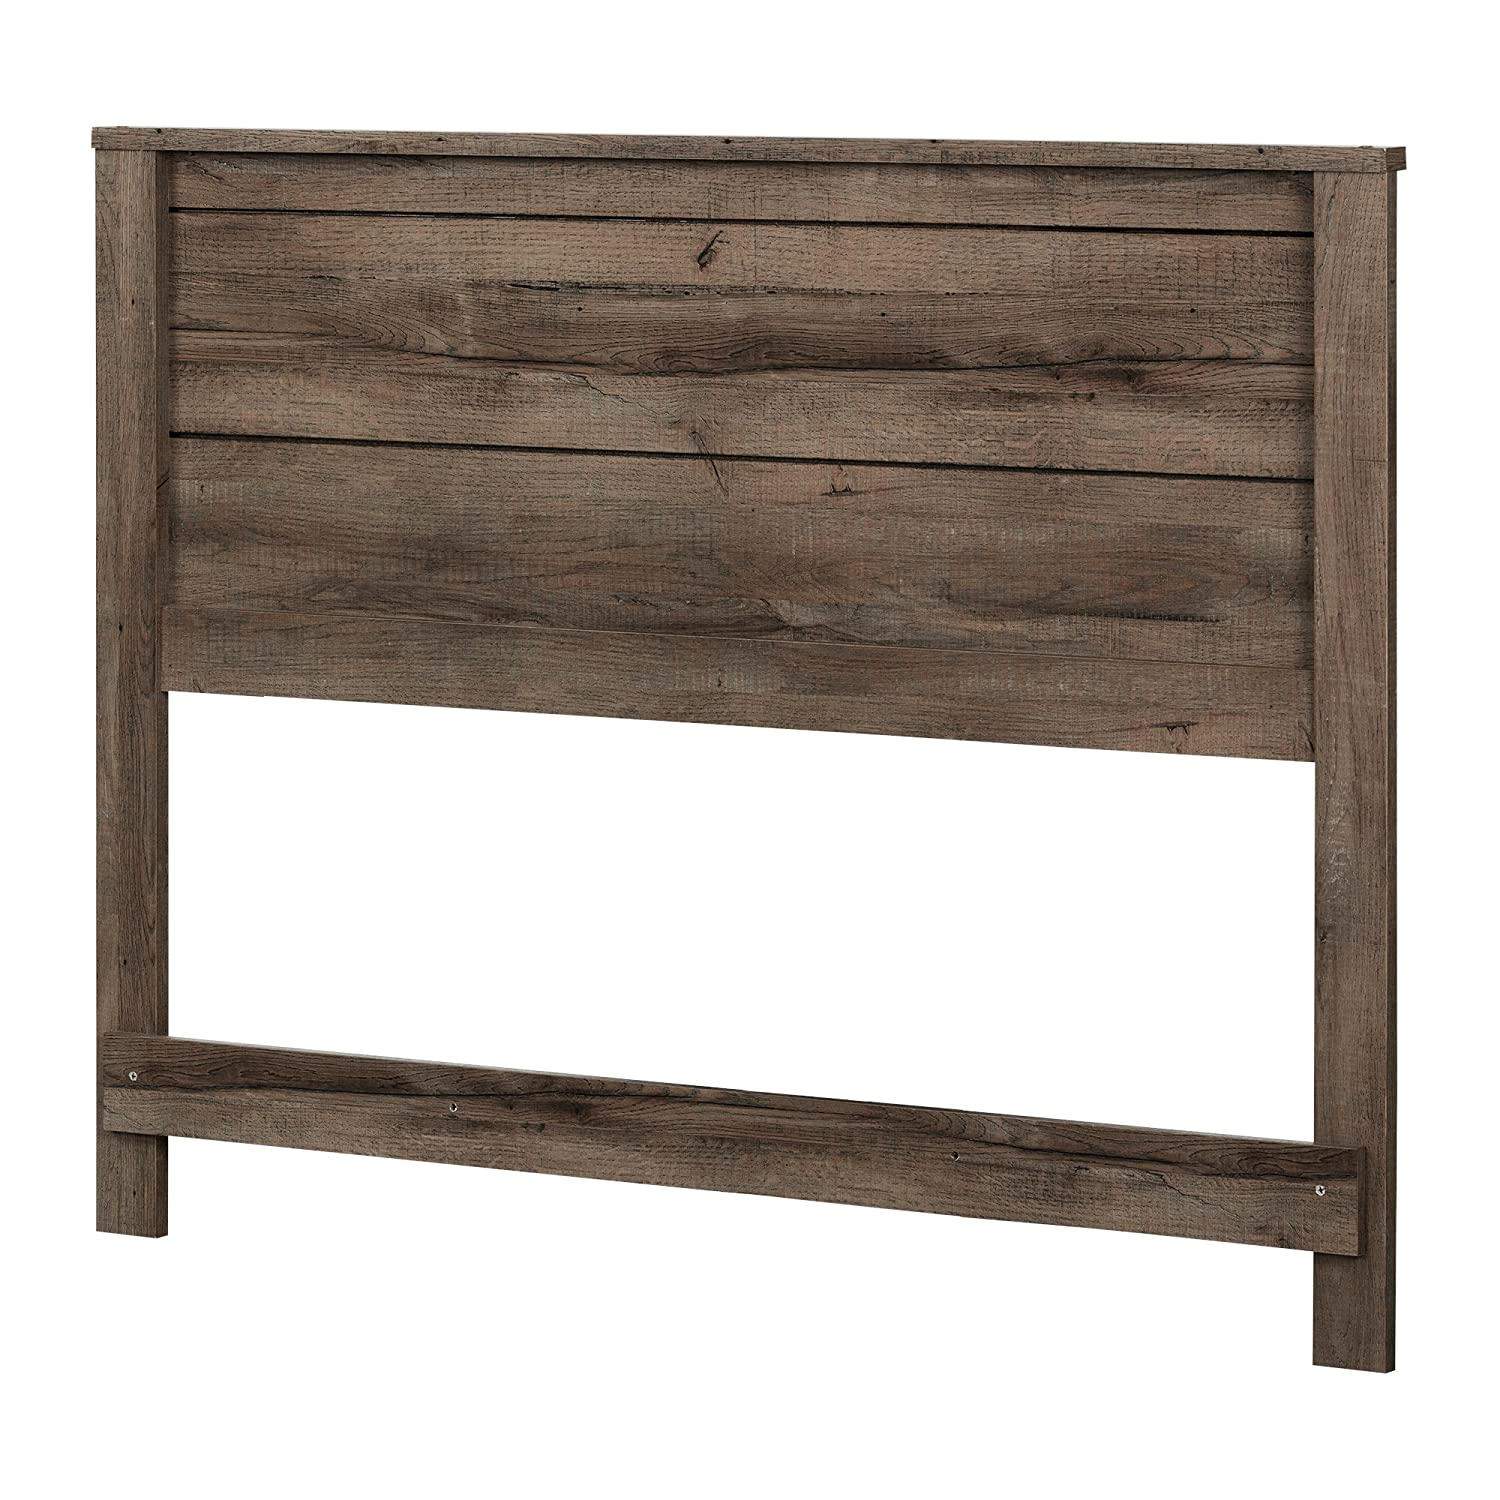 South Shore Furniture 11925 Headboard, Full, Fall Oak